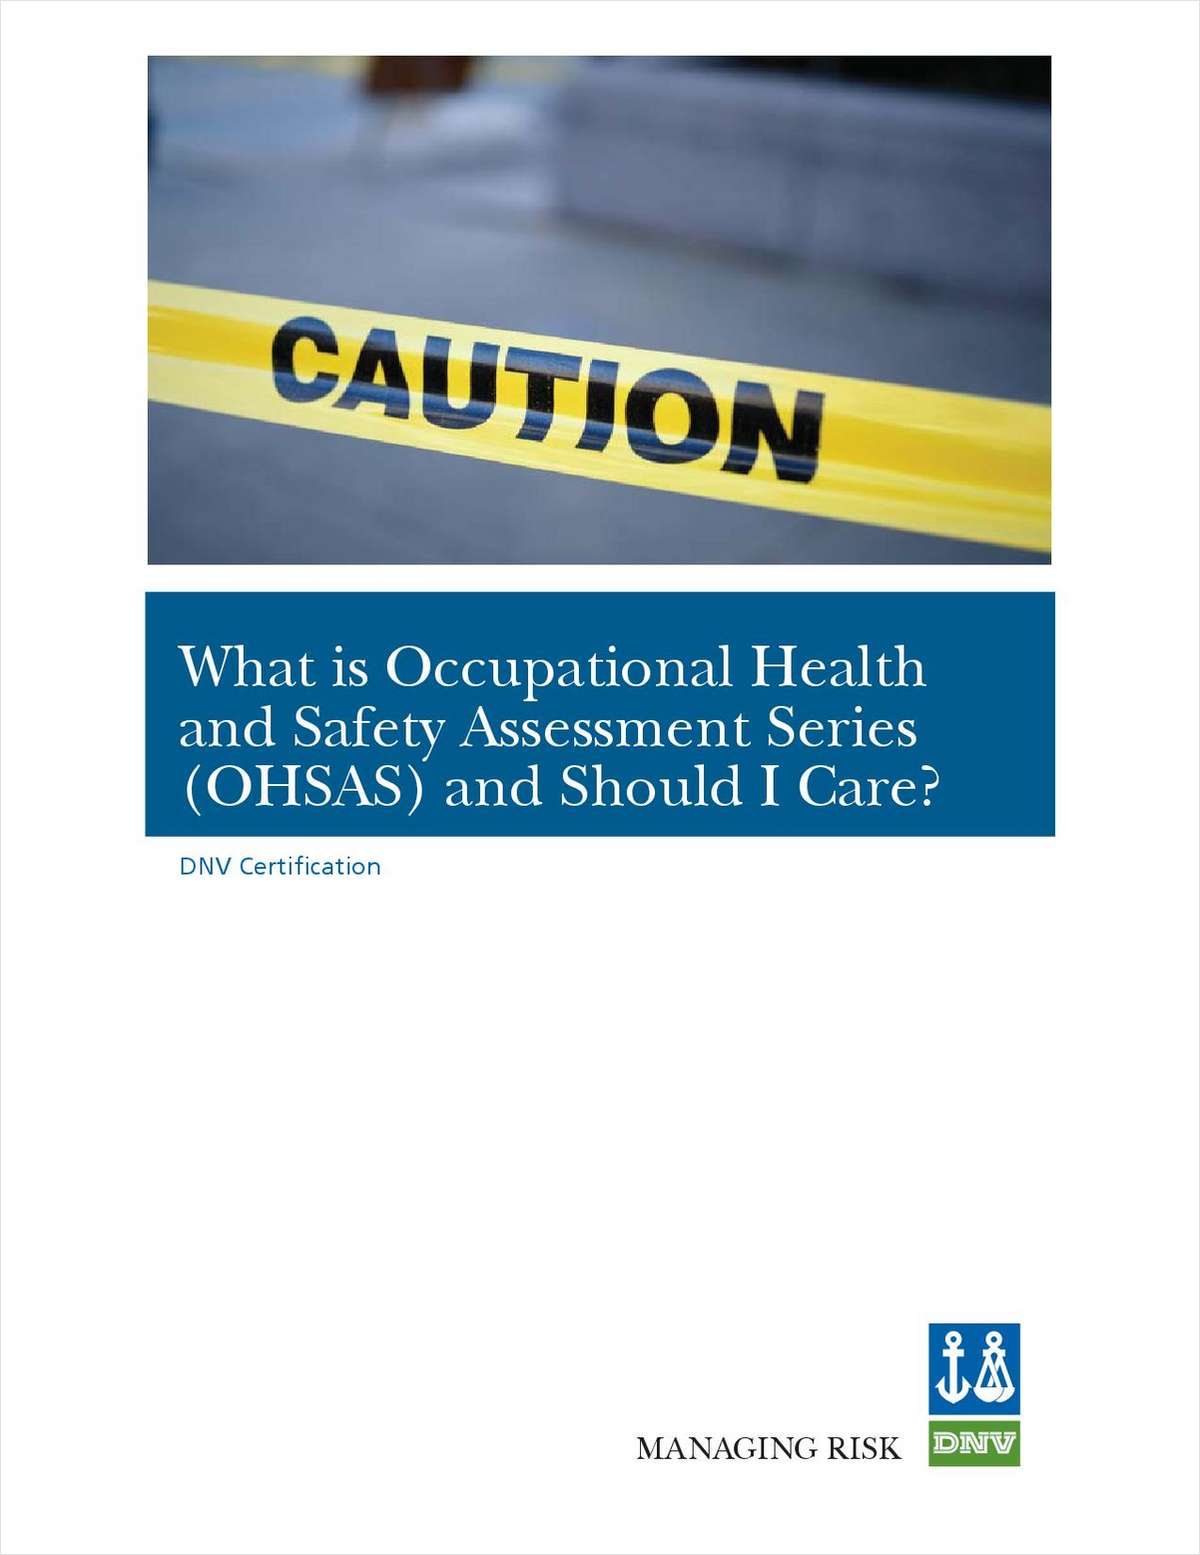 What Occupational Health and Safety Assessment Series (OHSAS 18001) and Should I Care?